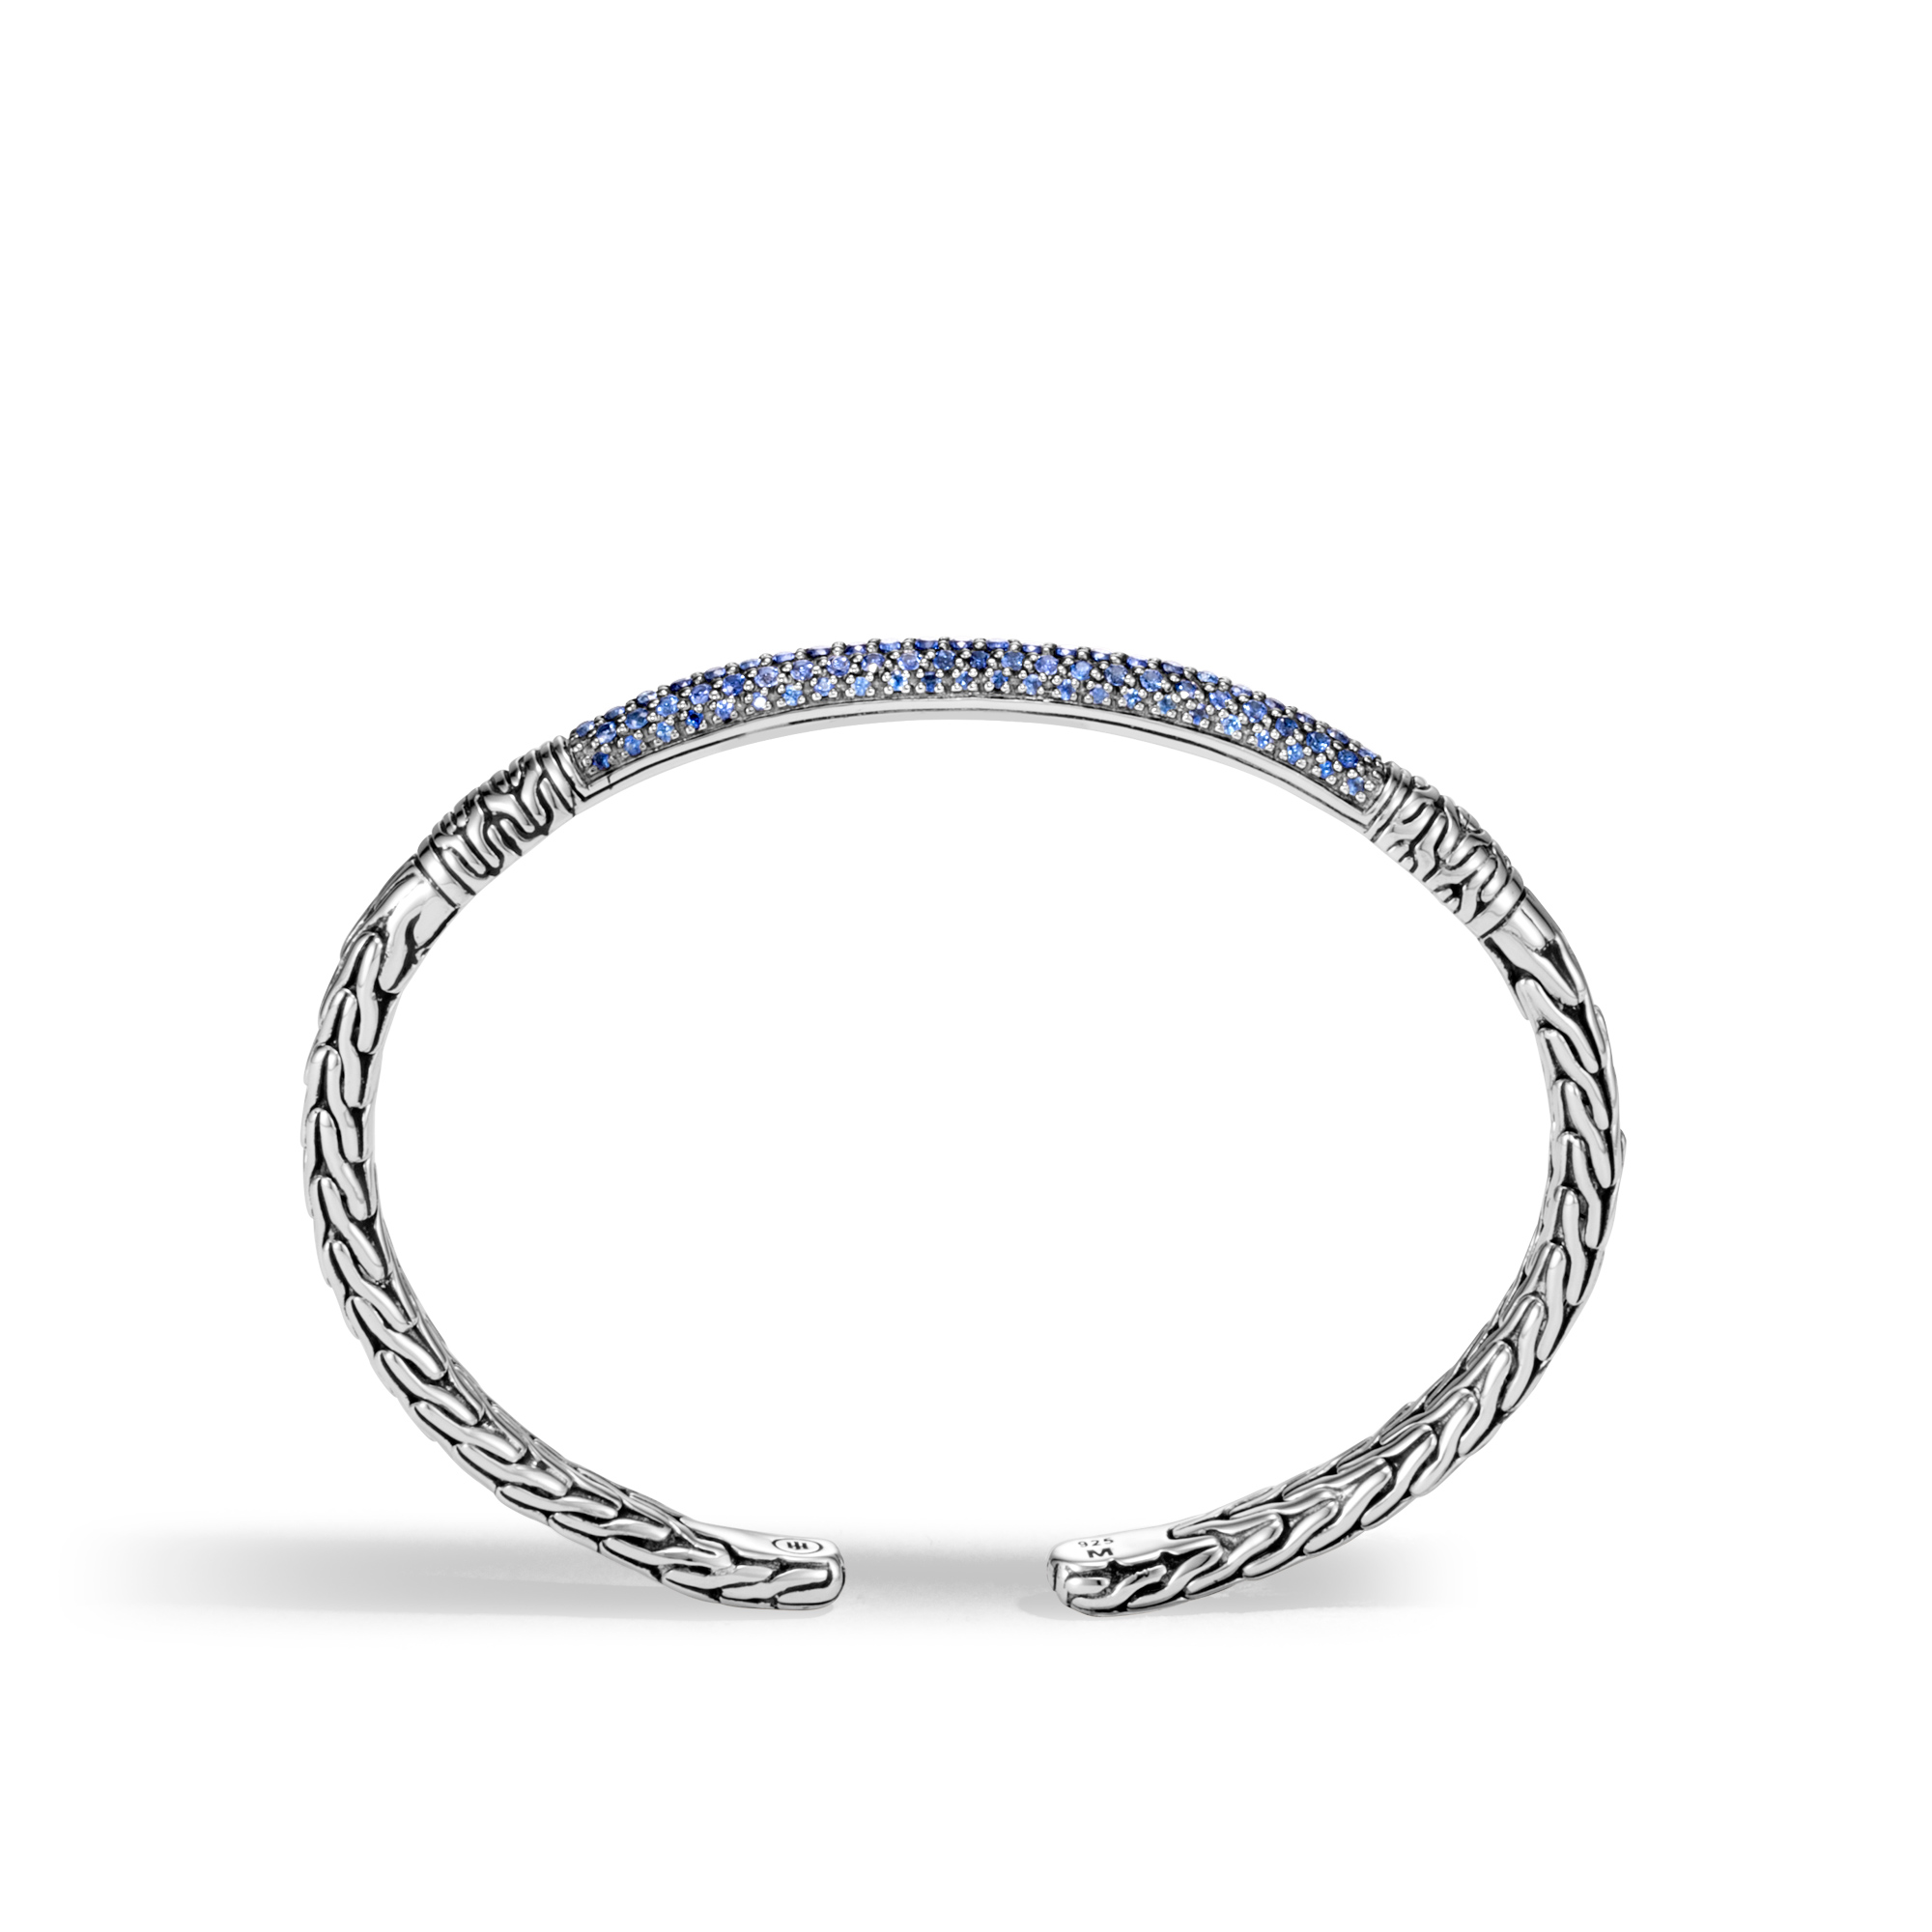 Classic Chain Cuff in Silver with Gemstone, Blue Sapphire, large